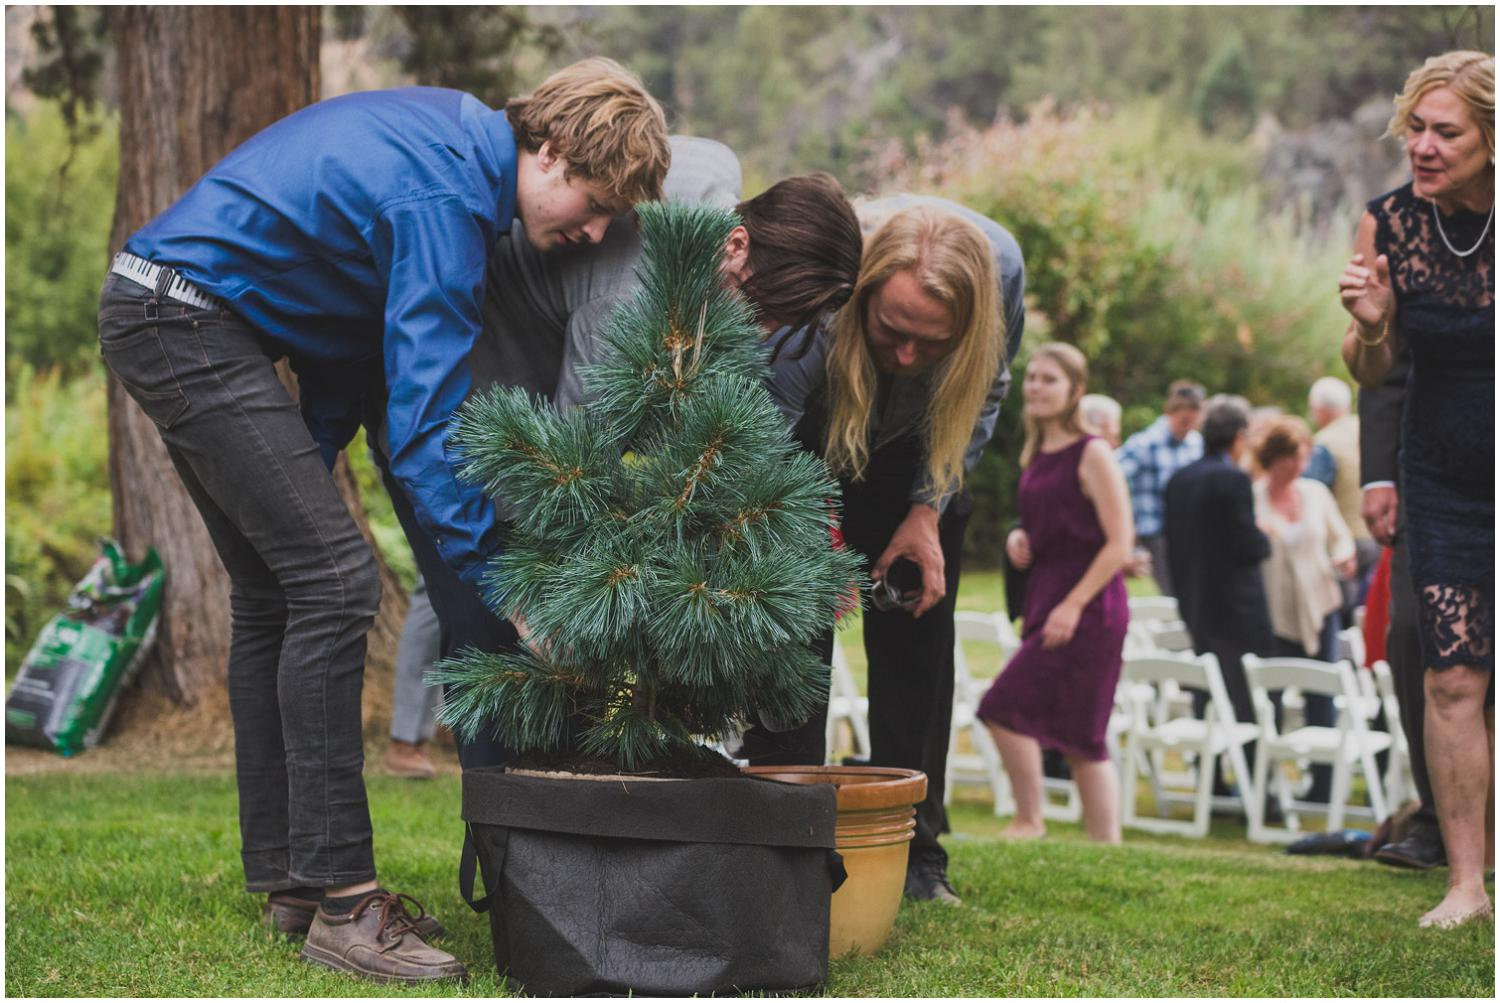 wedding guests and family add dirt to the bride and groom's unity tree after ceremony